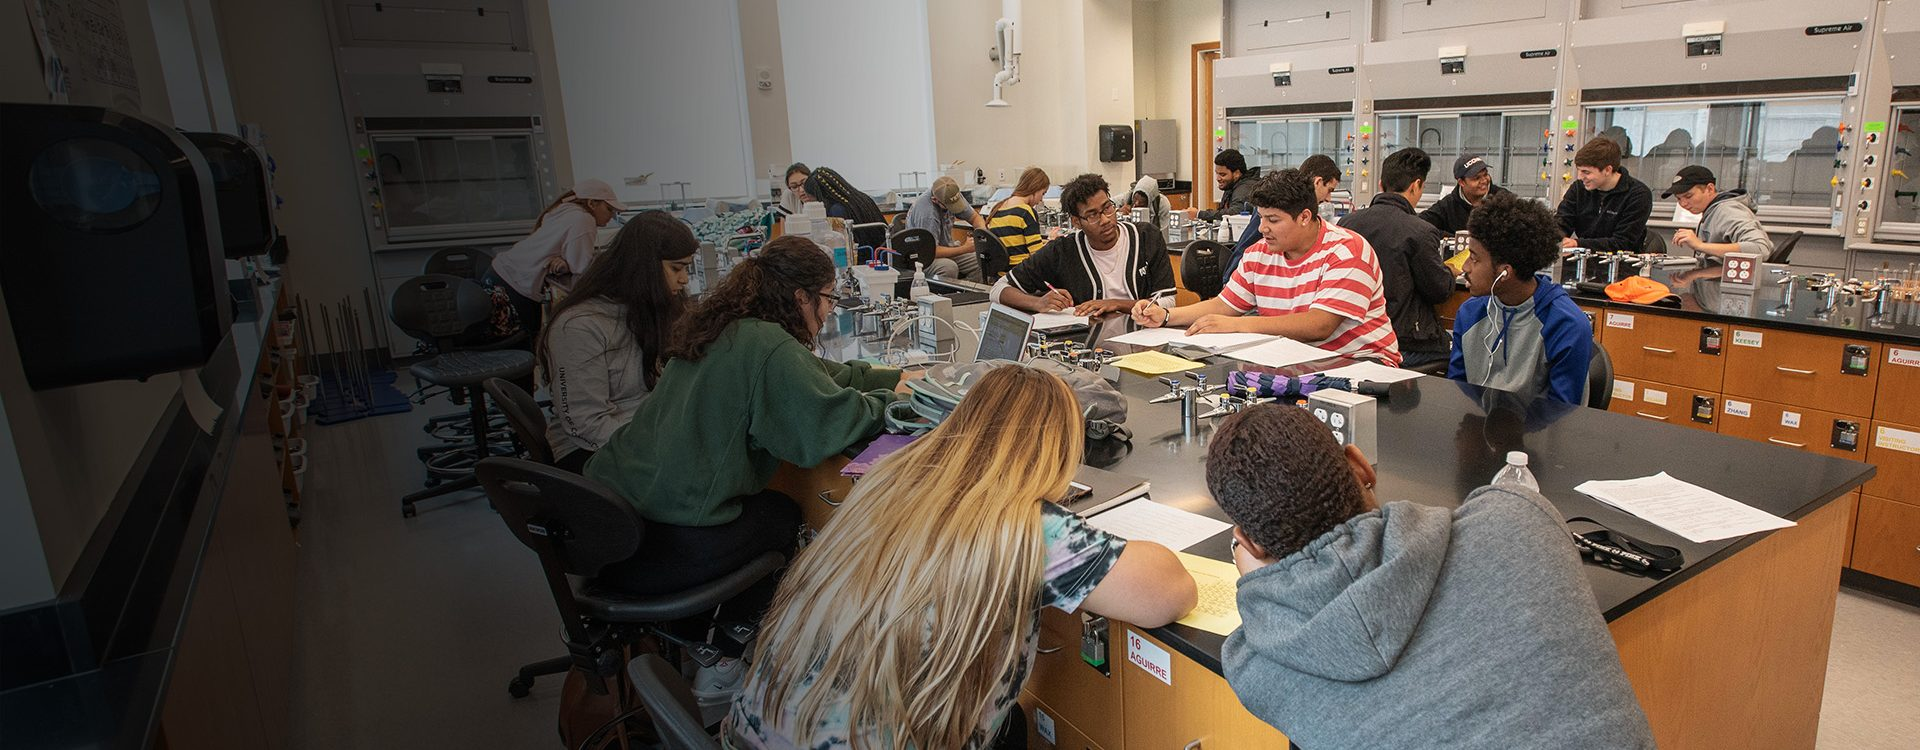 Students working together on group projects in a laboratory class